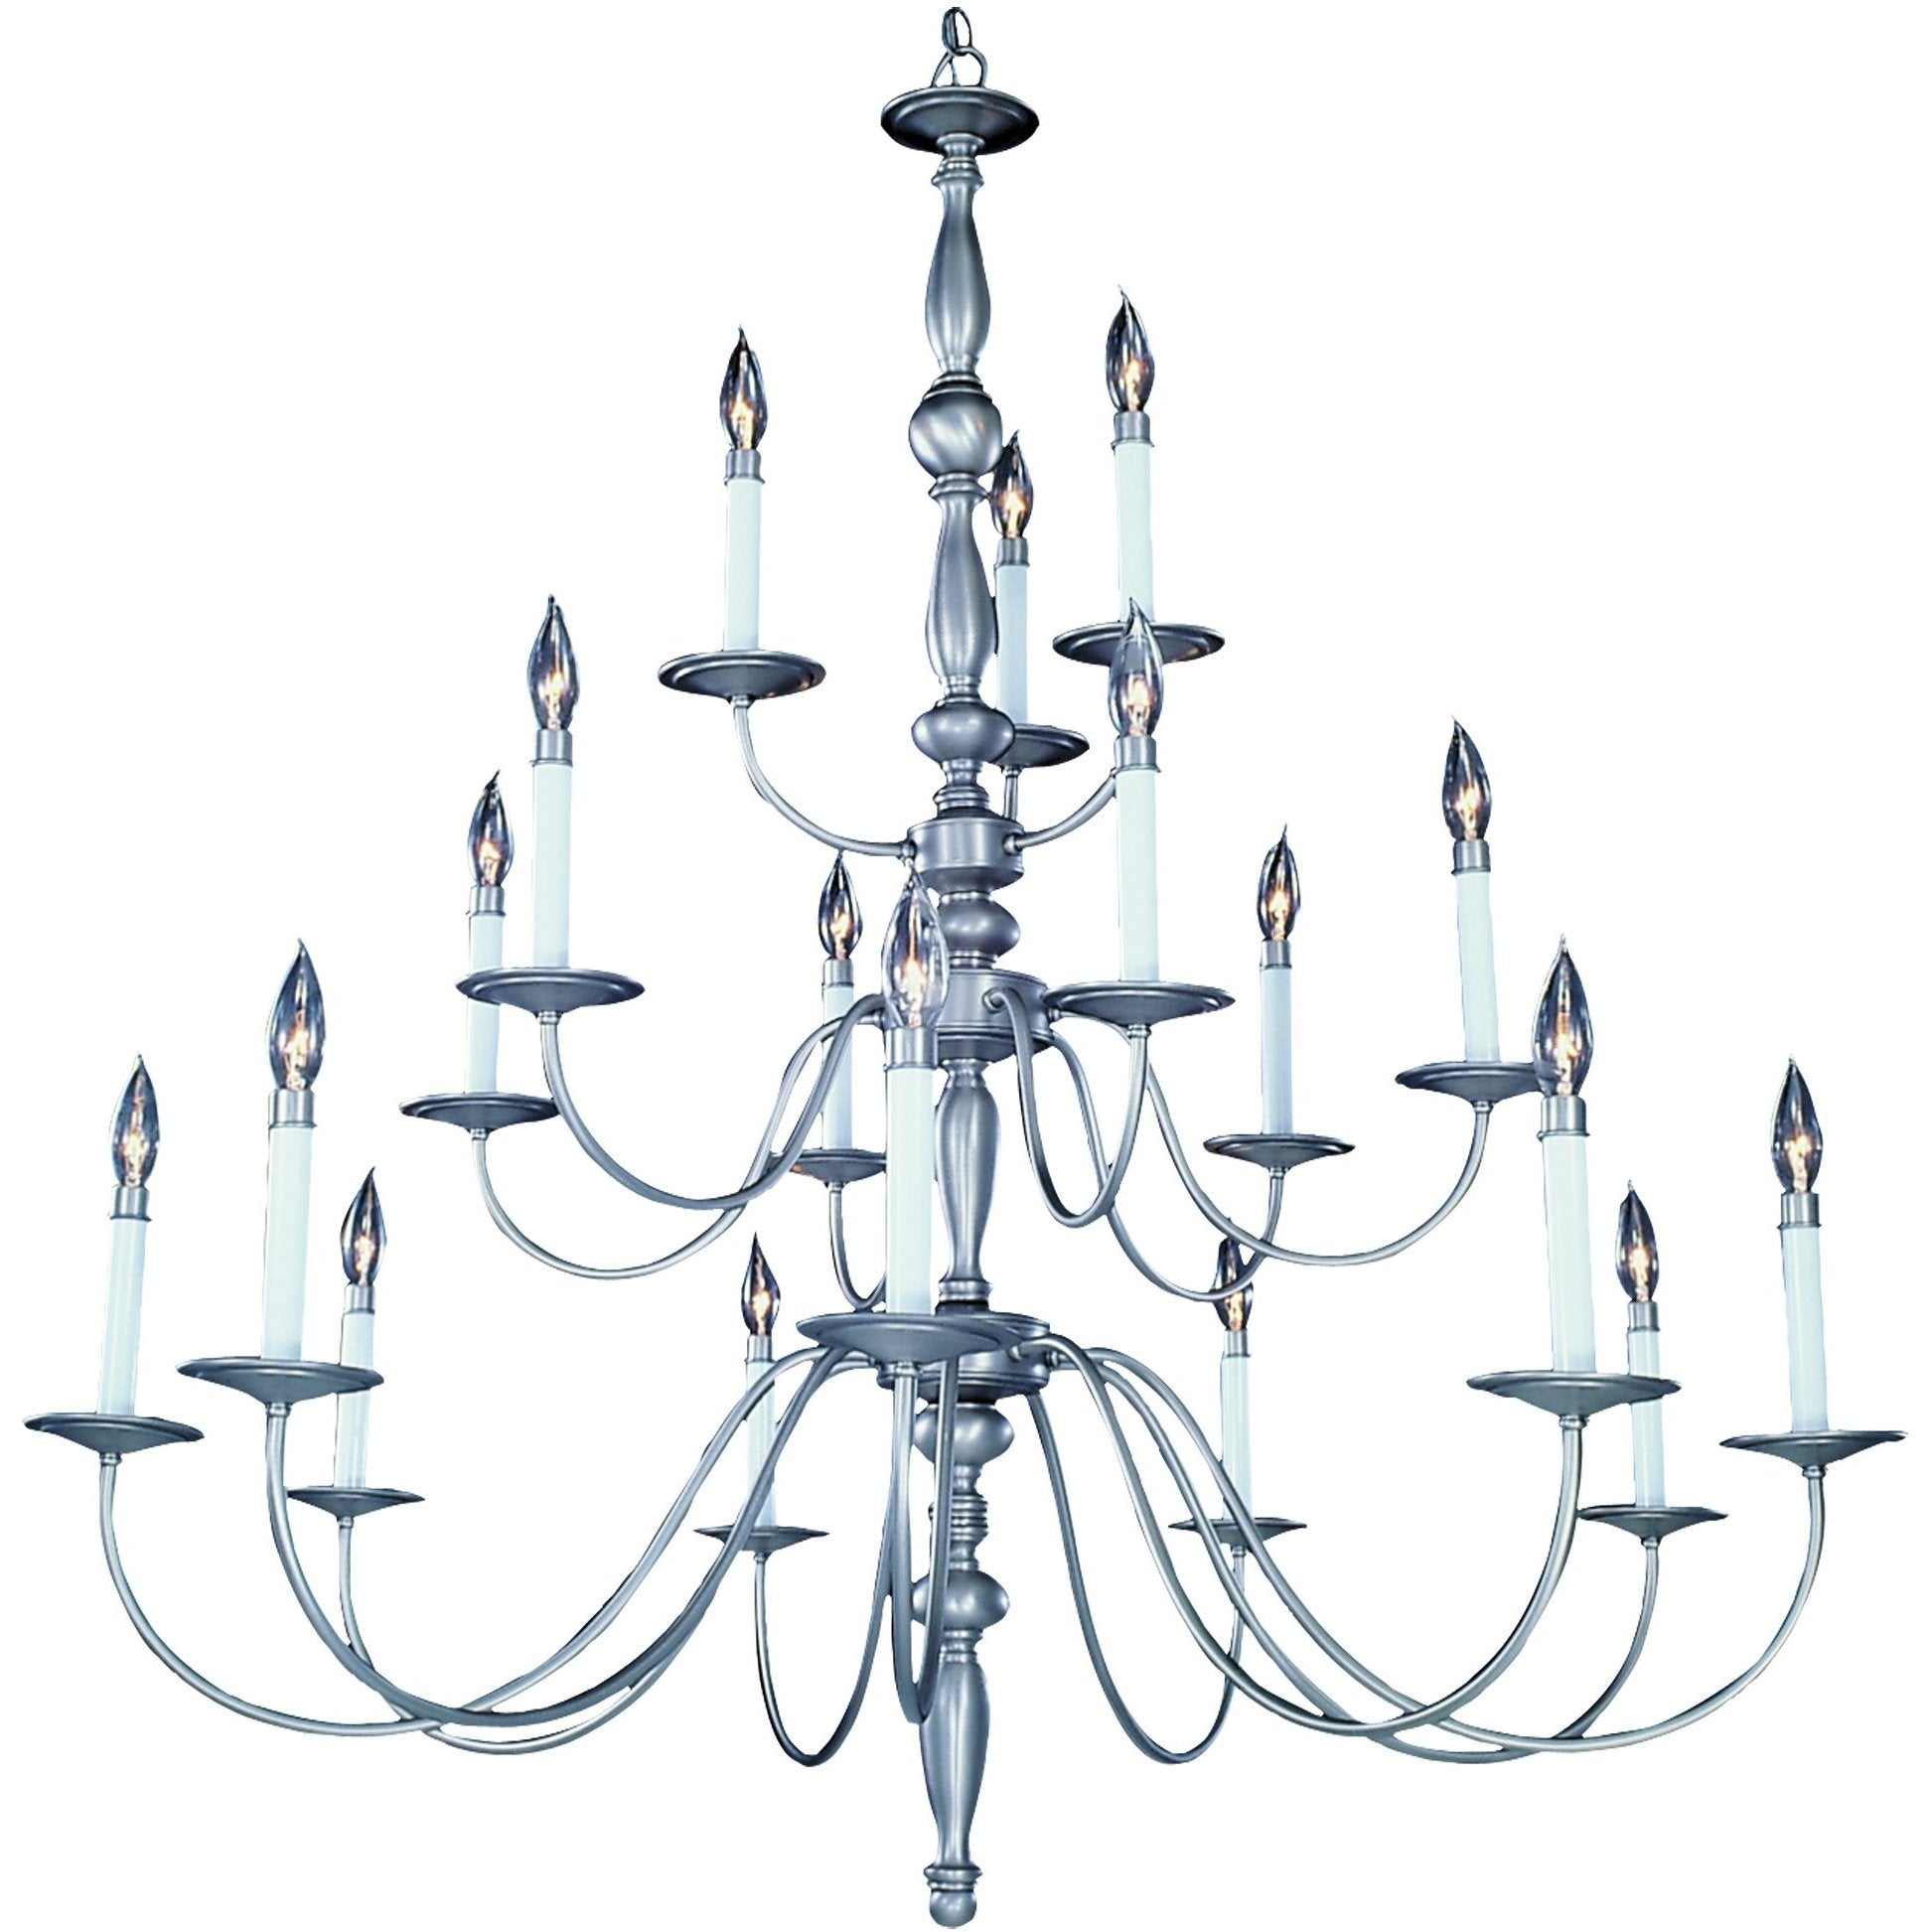 Framburg Foyer Chandeliers Satin Pewter 18-Light Satin Pewter Jamestown Foyer Chandelier by Framburg 7918